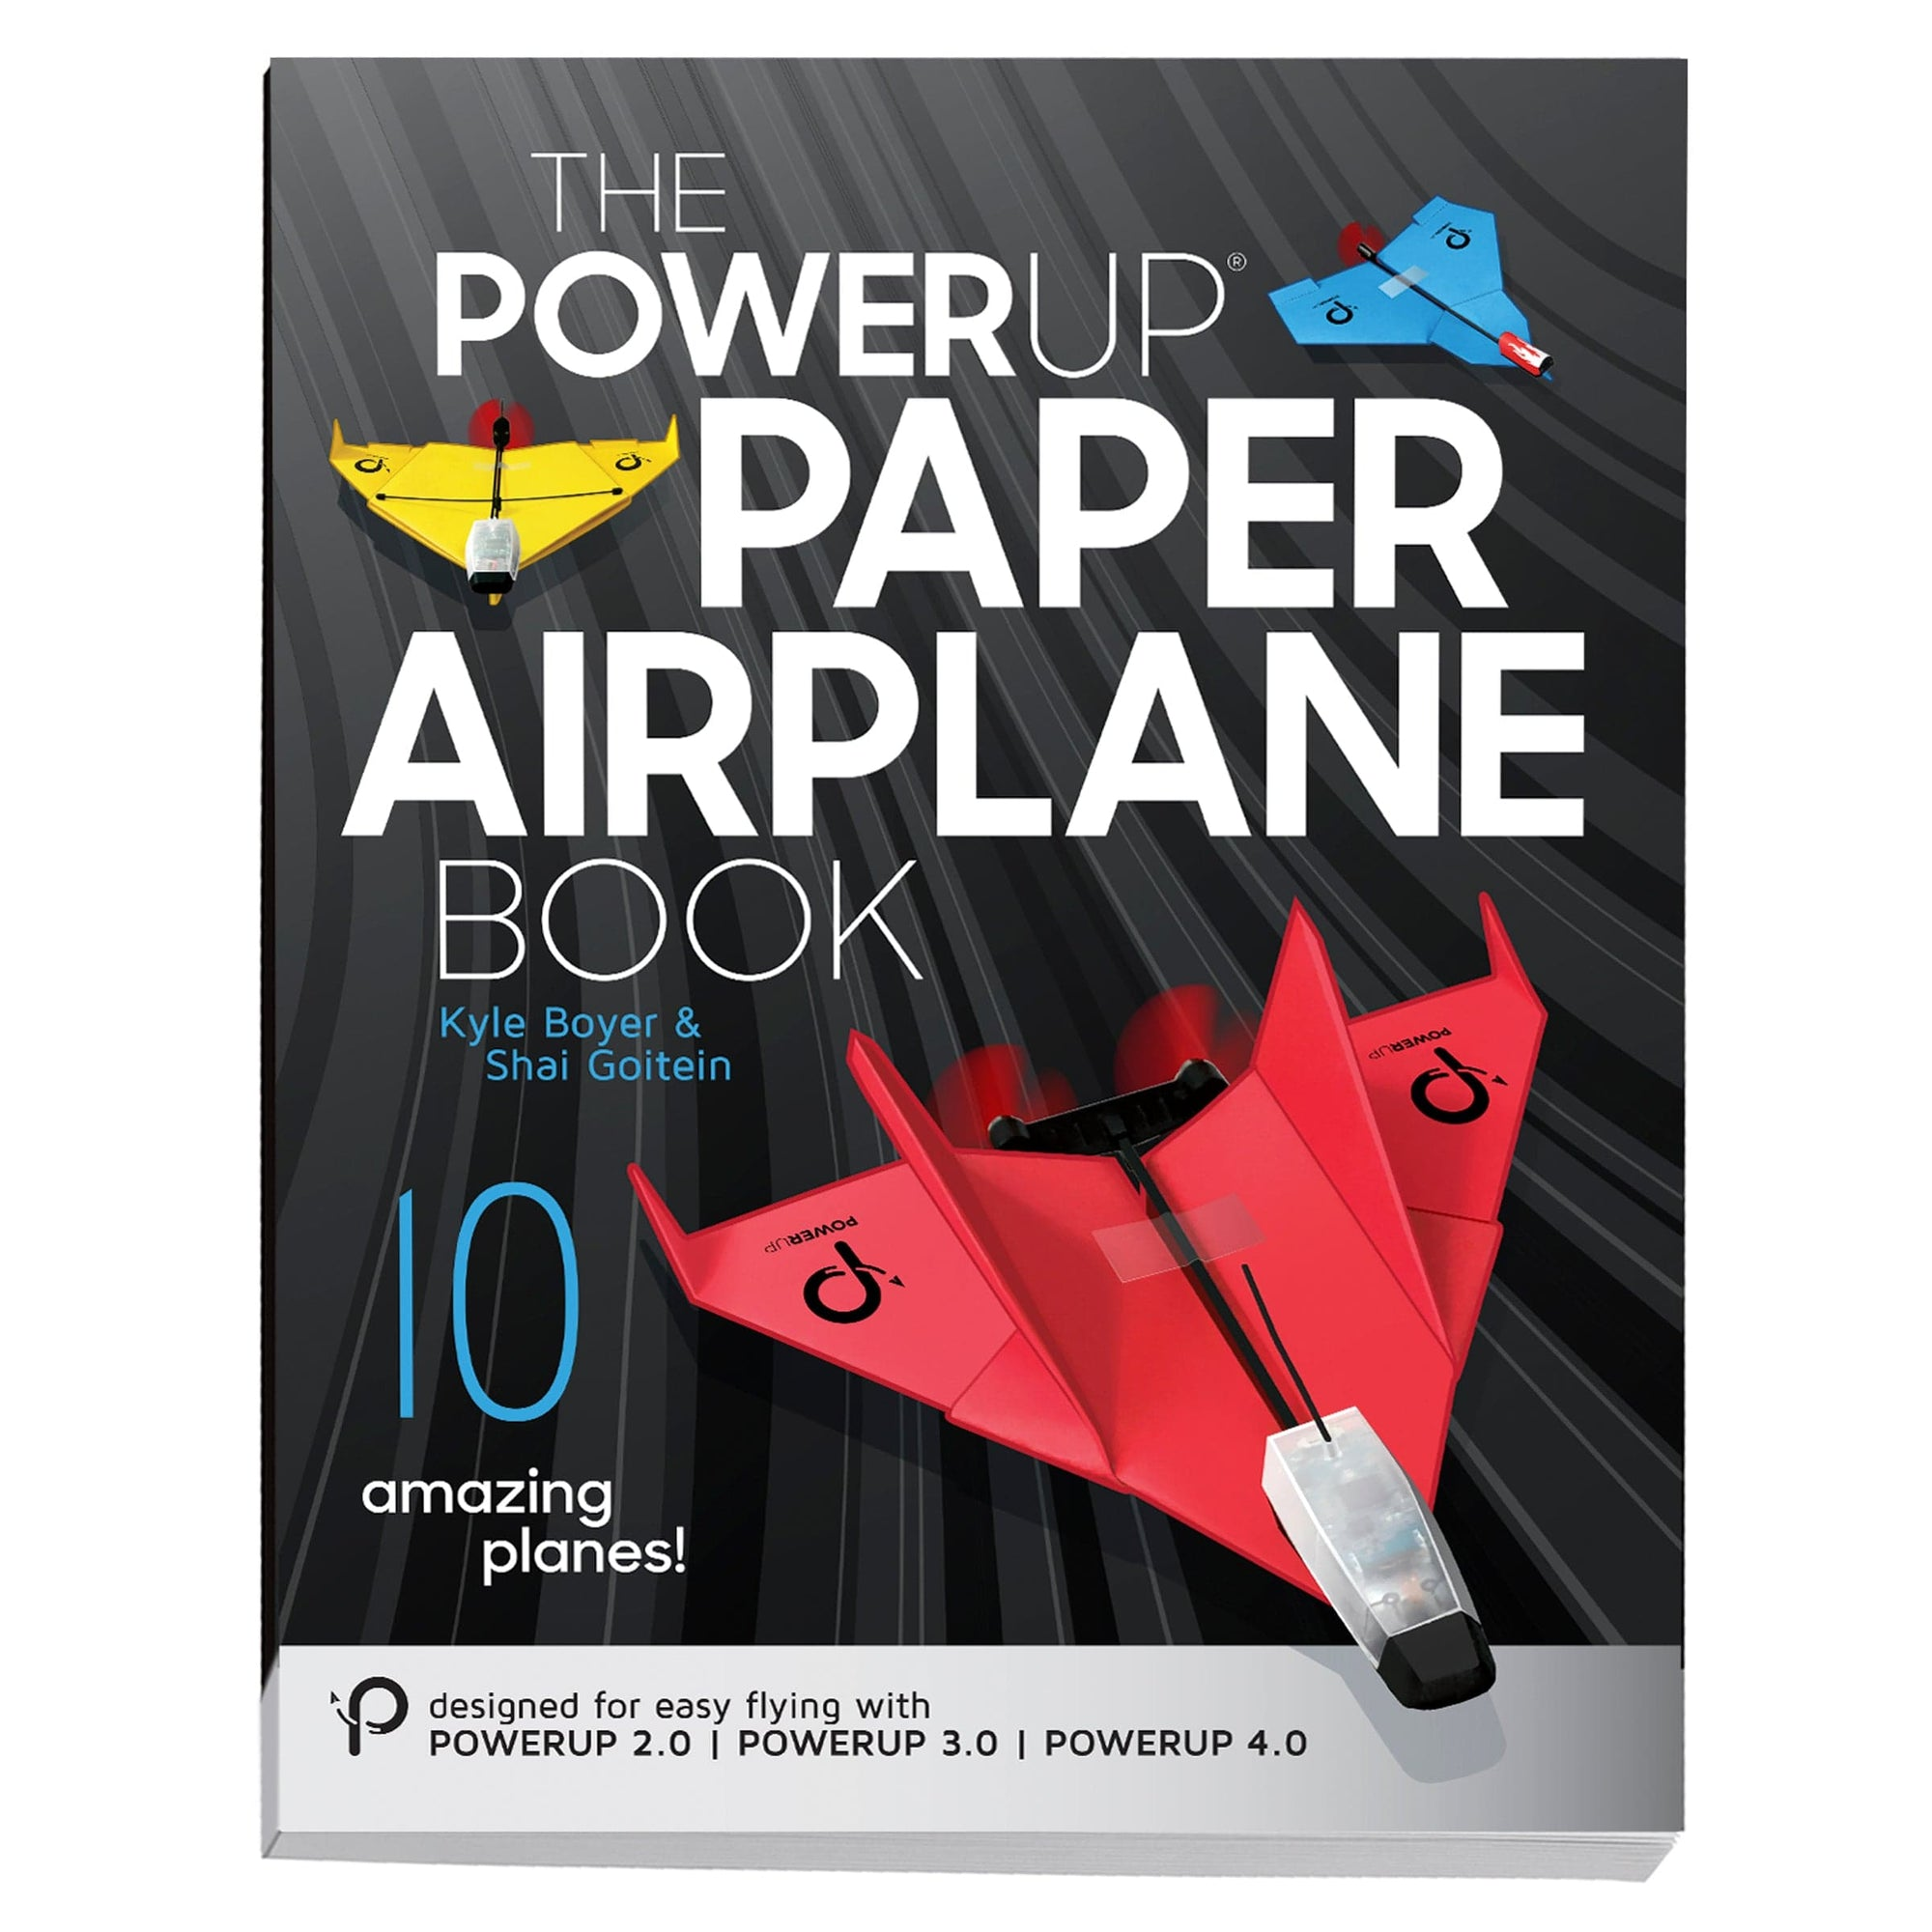 POWERUP Paper Airplane Book